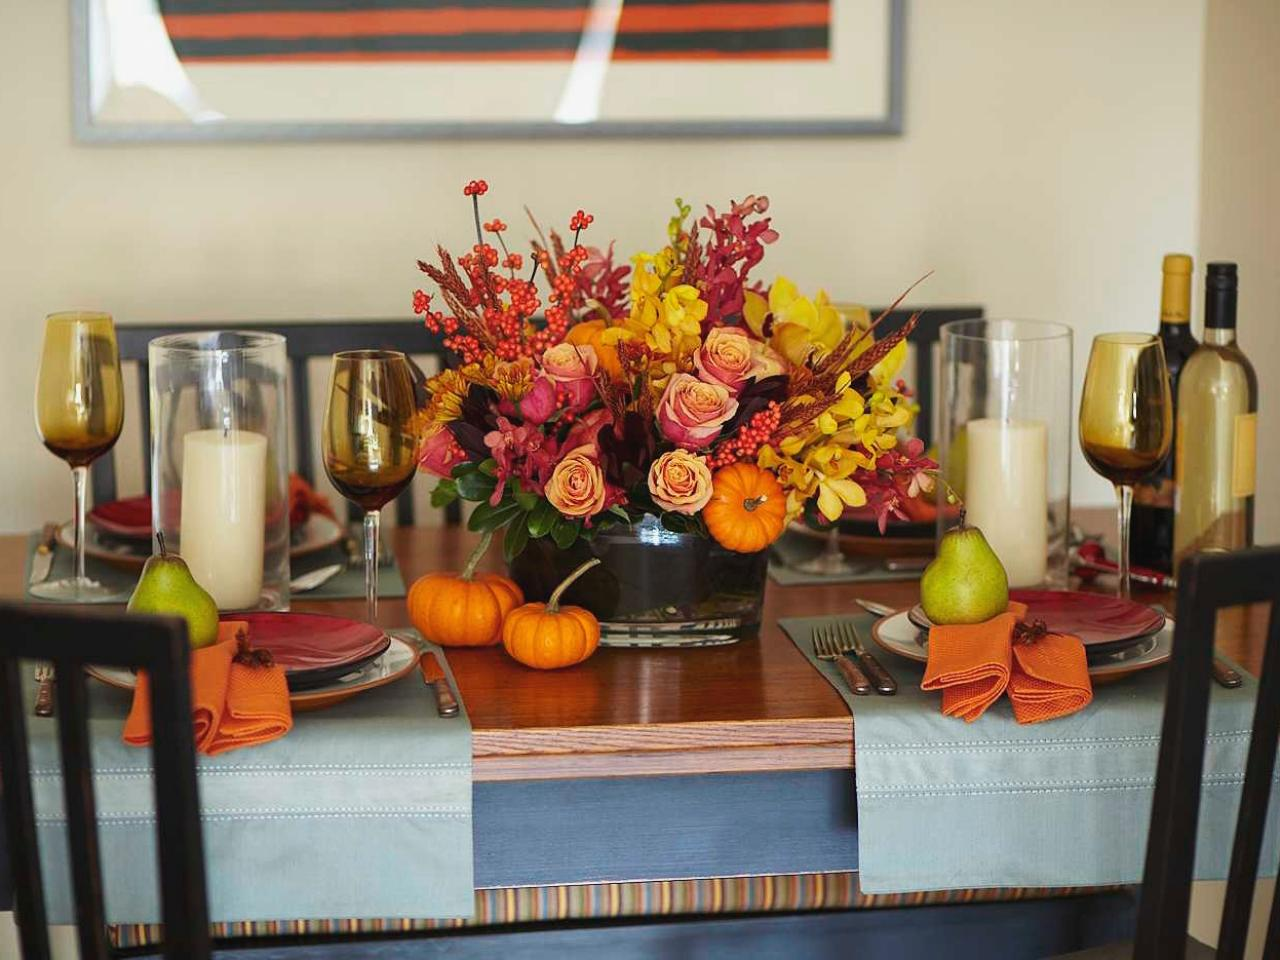 How to decorate your home for Thanksgiving